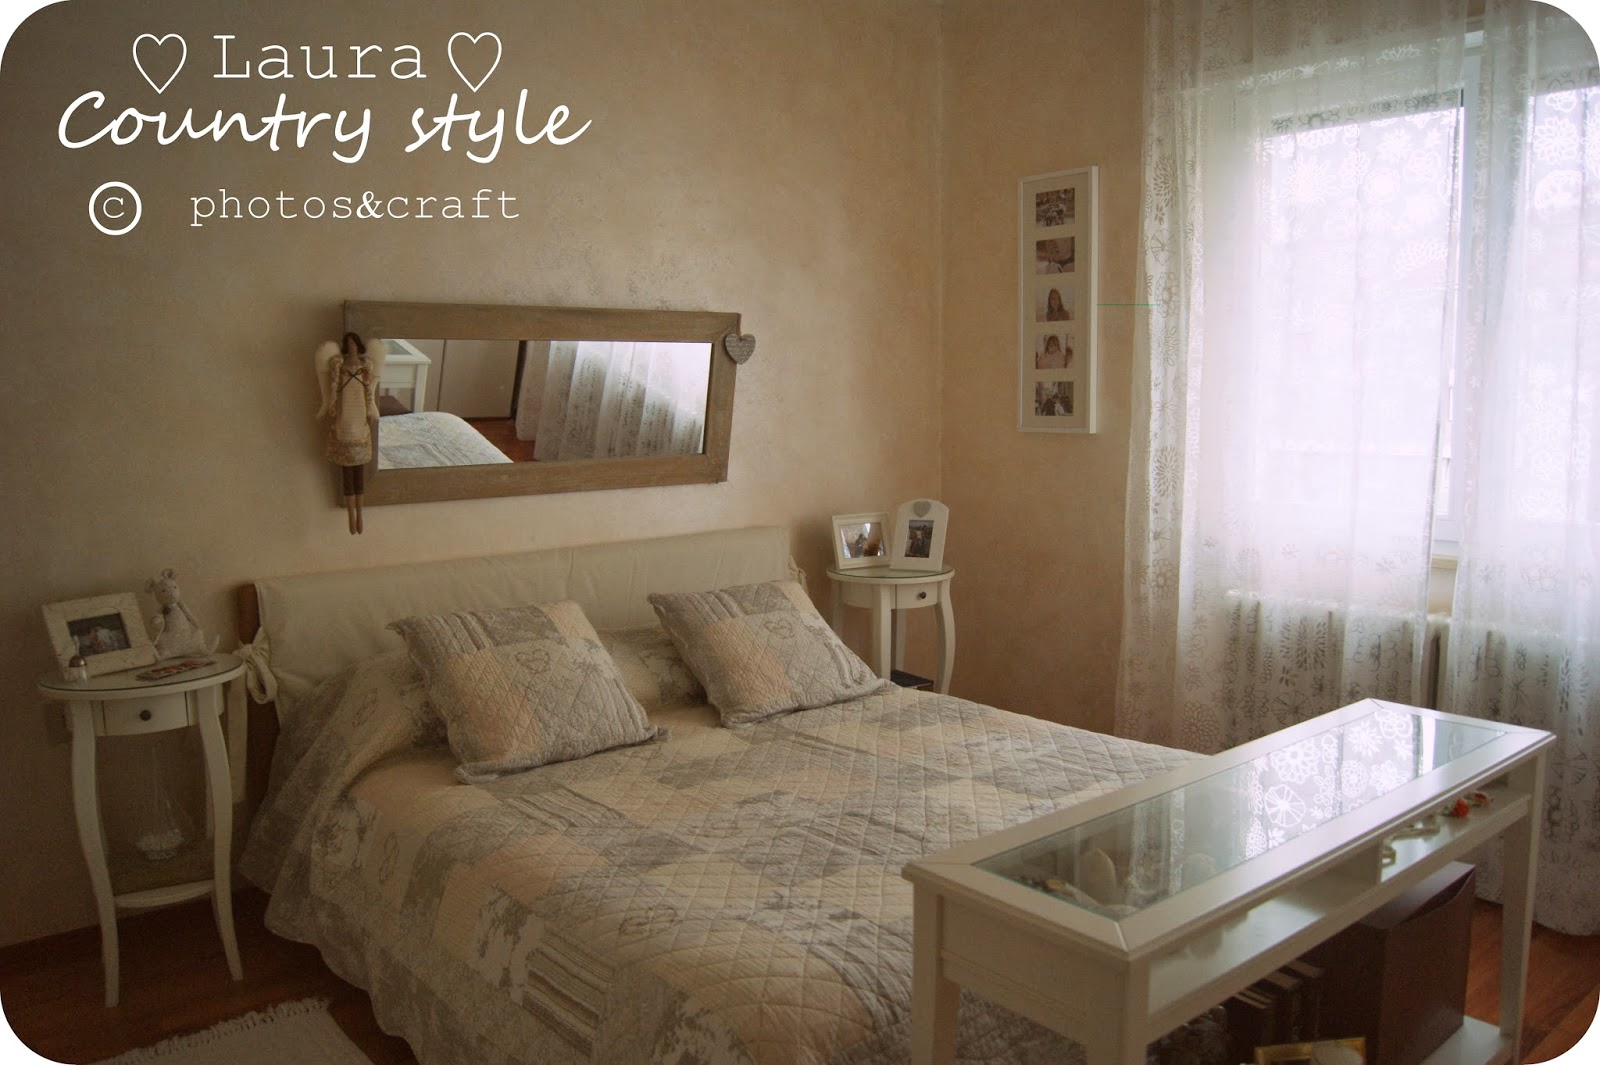 Laura country style my home bedroom - Testate letto maison du monde ...